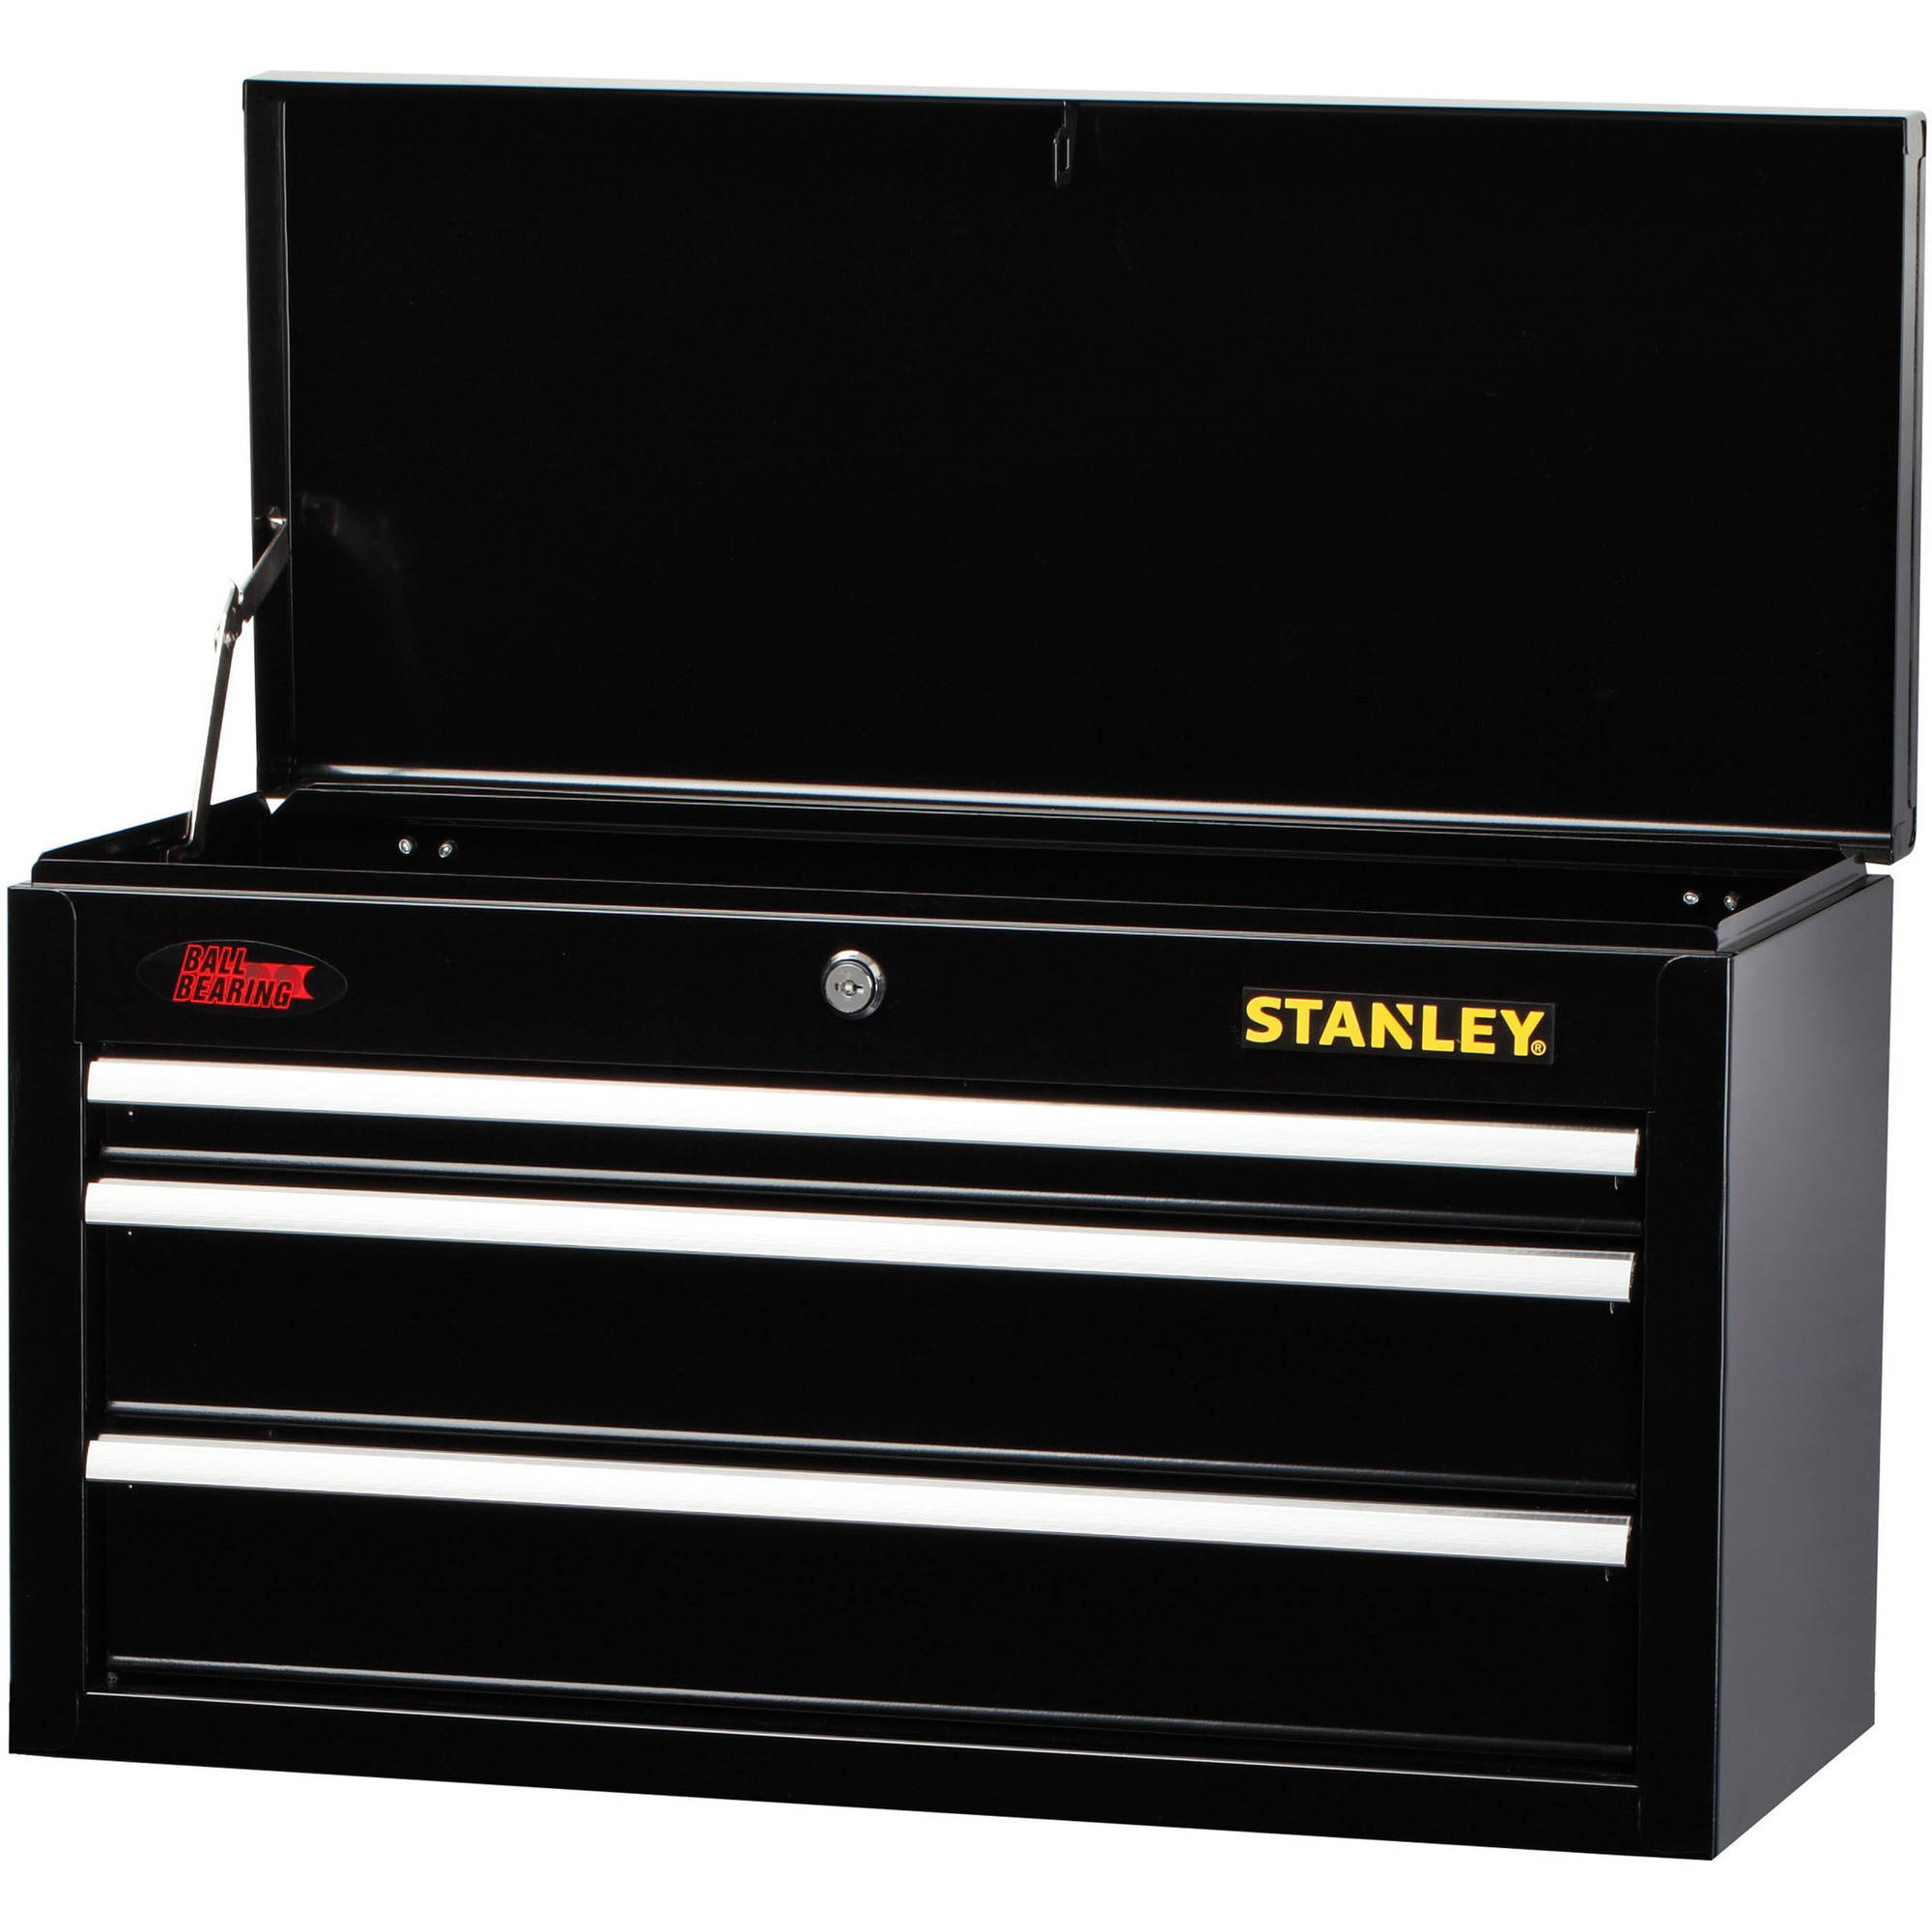 Stanley 5 Drawer Chest And Cabinet Combo With Bi Fold Doors, Black    Walmart.com